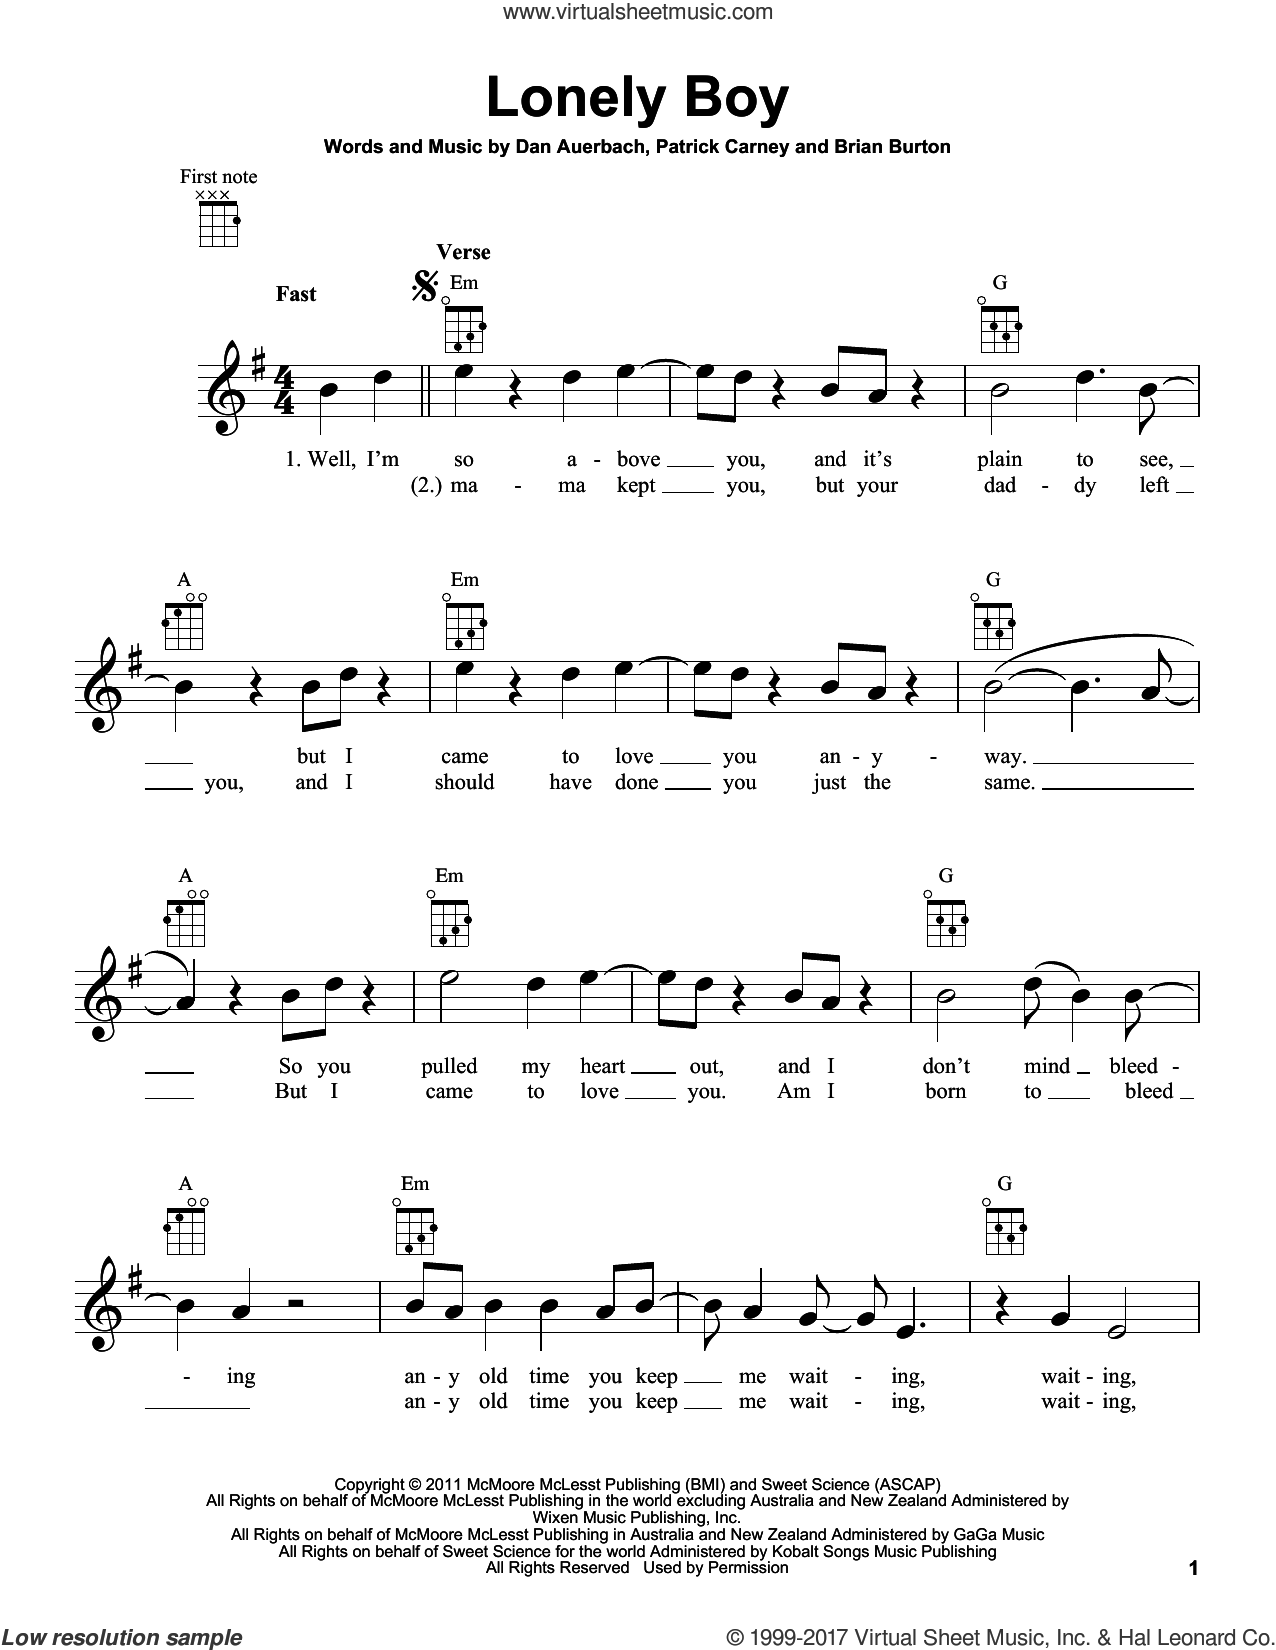 Lonely Boy sheet music for ukulele by The Black Keys, Brian Burton, Daniel Auerbach and Patrick Carney, intermediate skill level